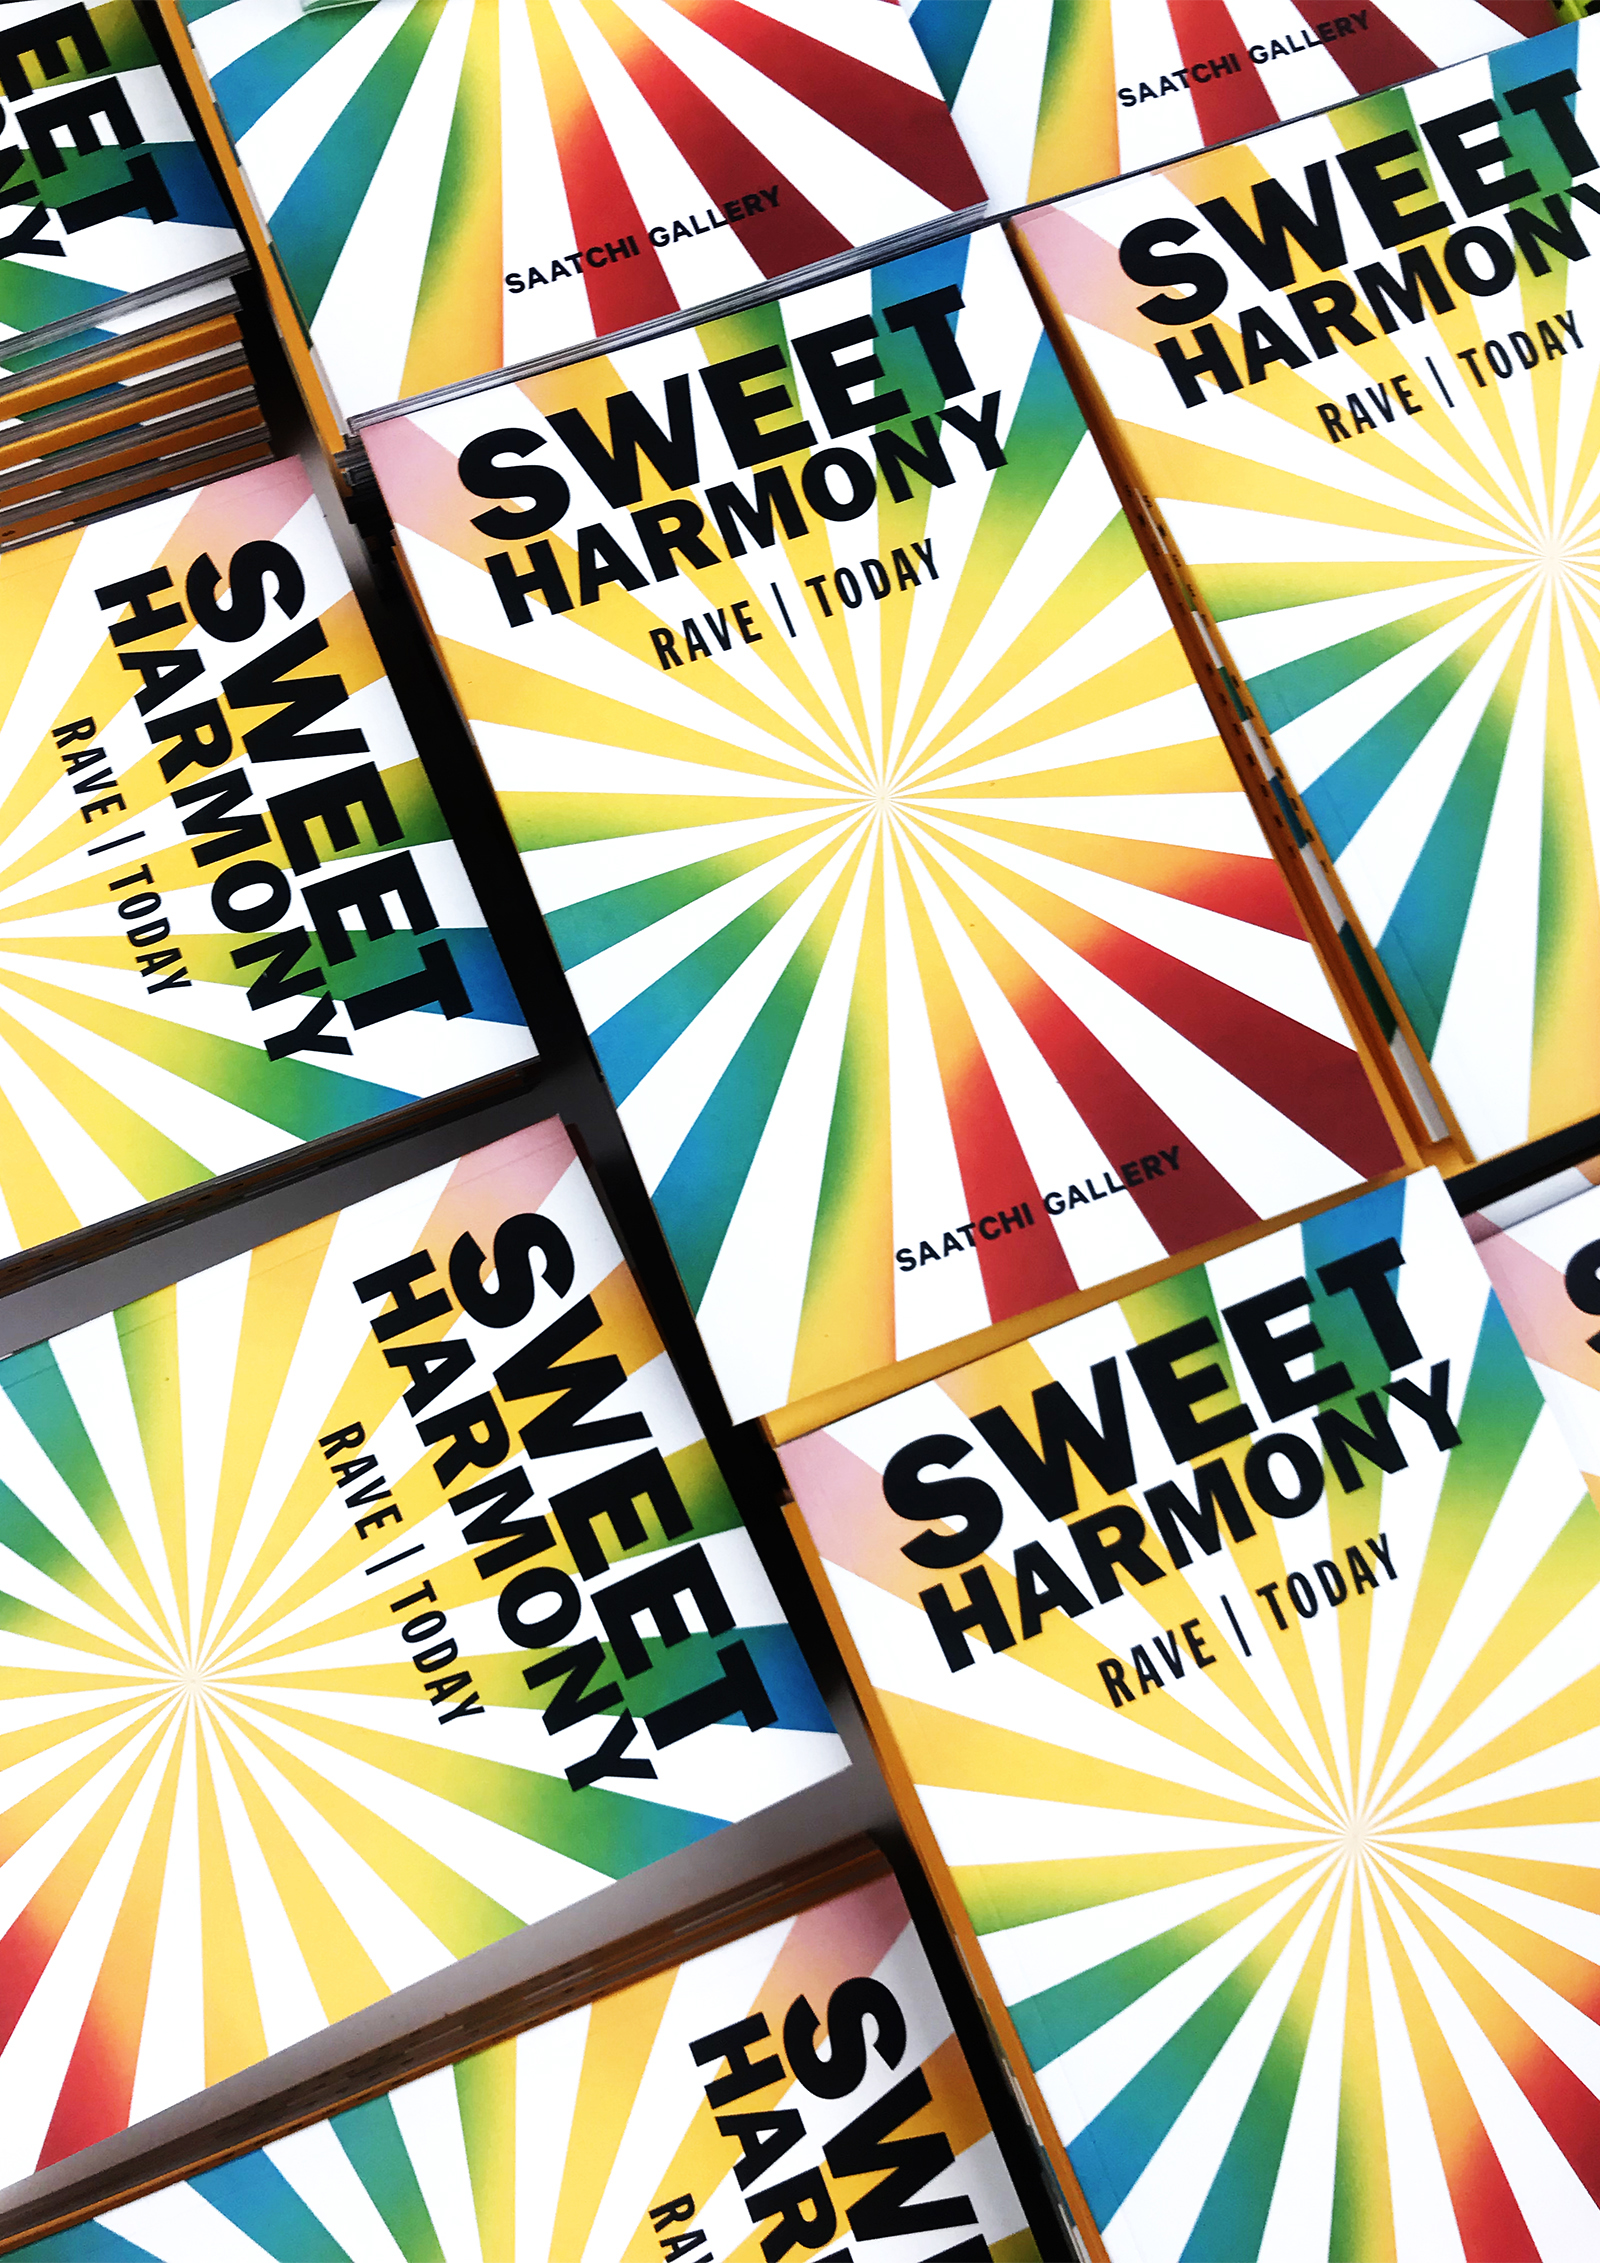 Sweet-Harmony-Saatchi-Gallery-Rave-Today-Book-Shop-Pavement-Licker.jpg